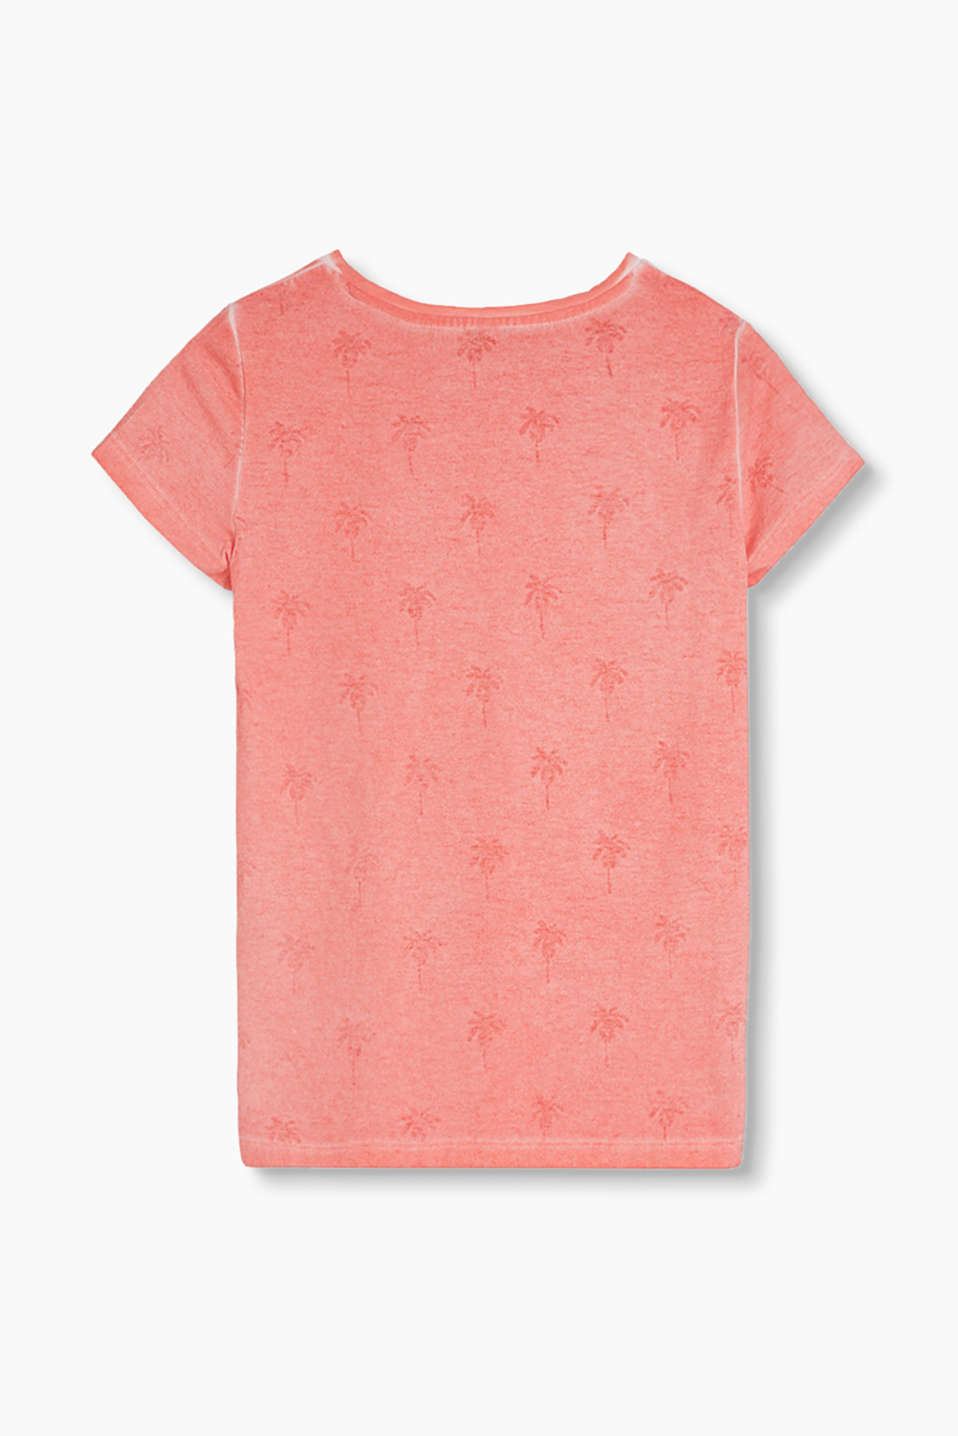 T-shirt with a palm print